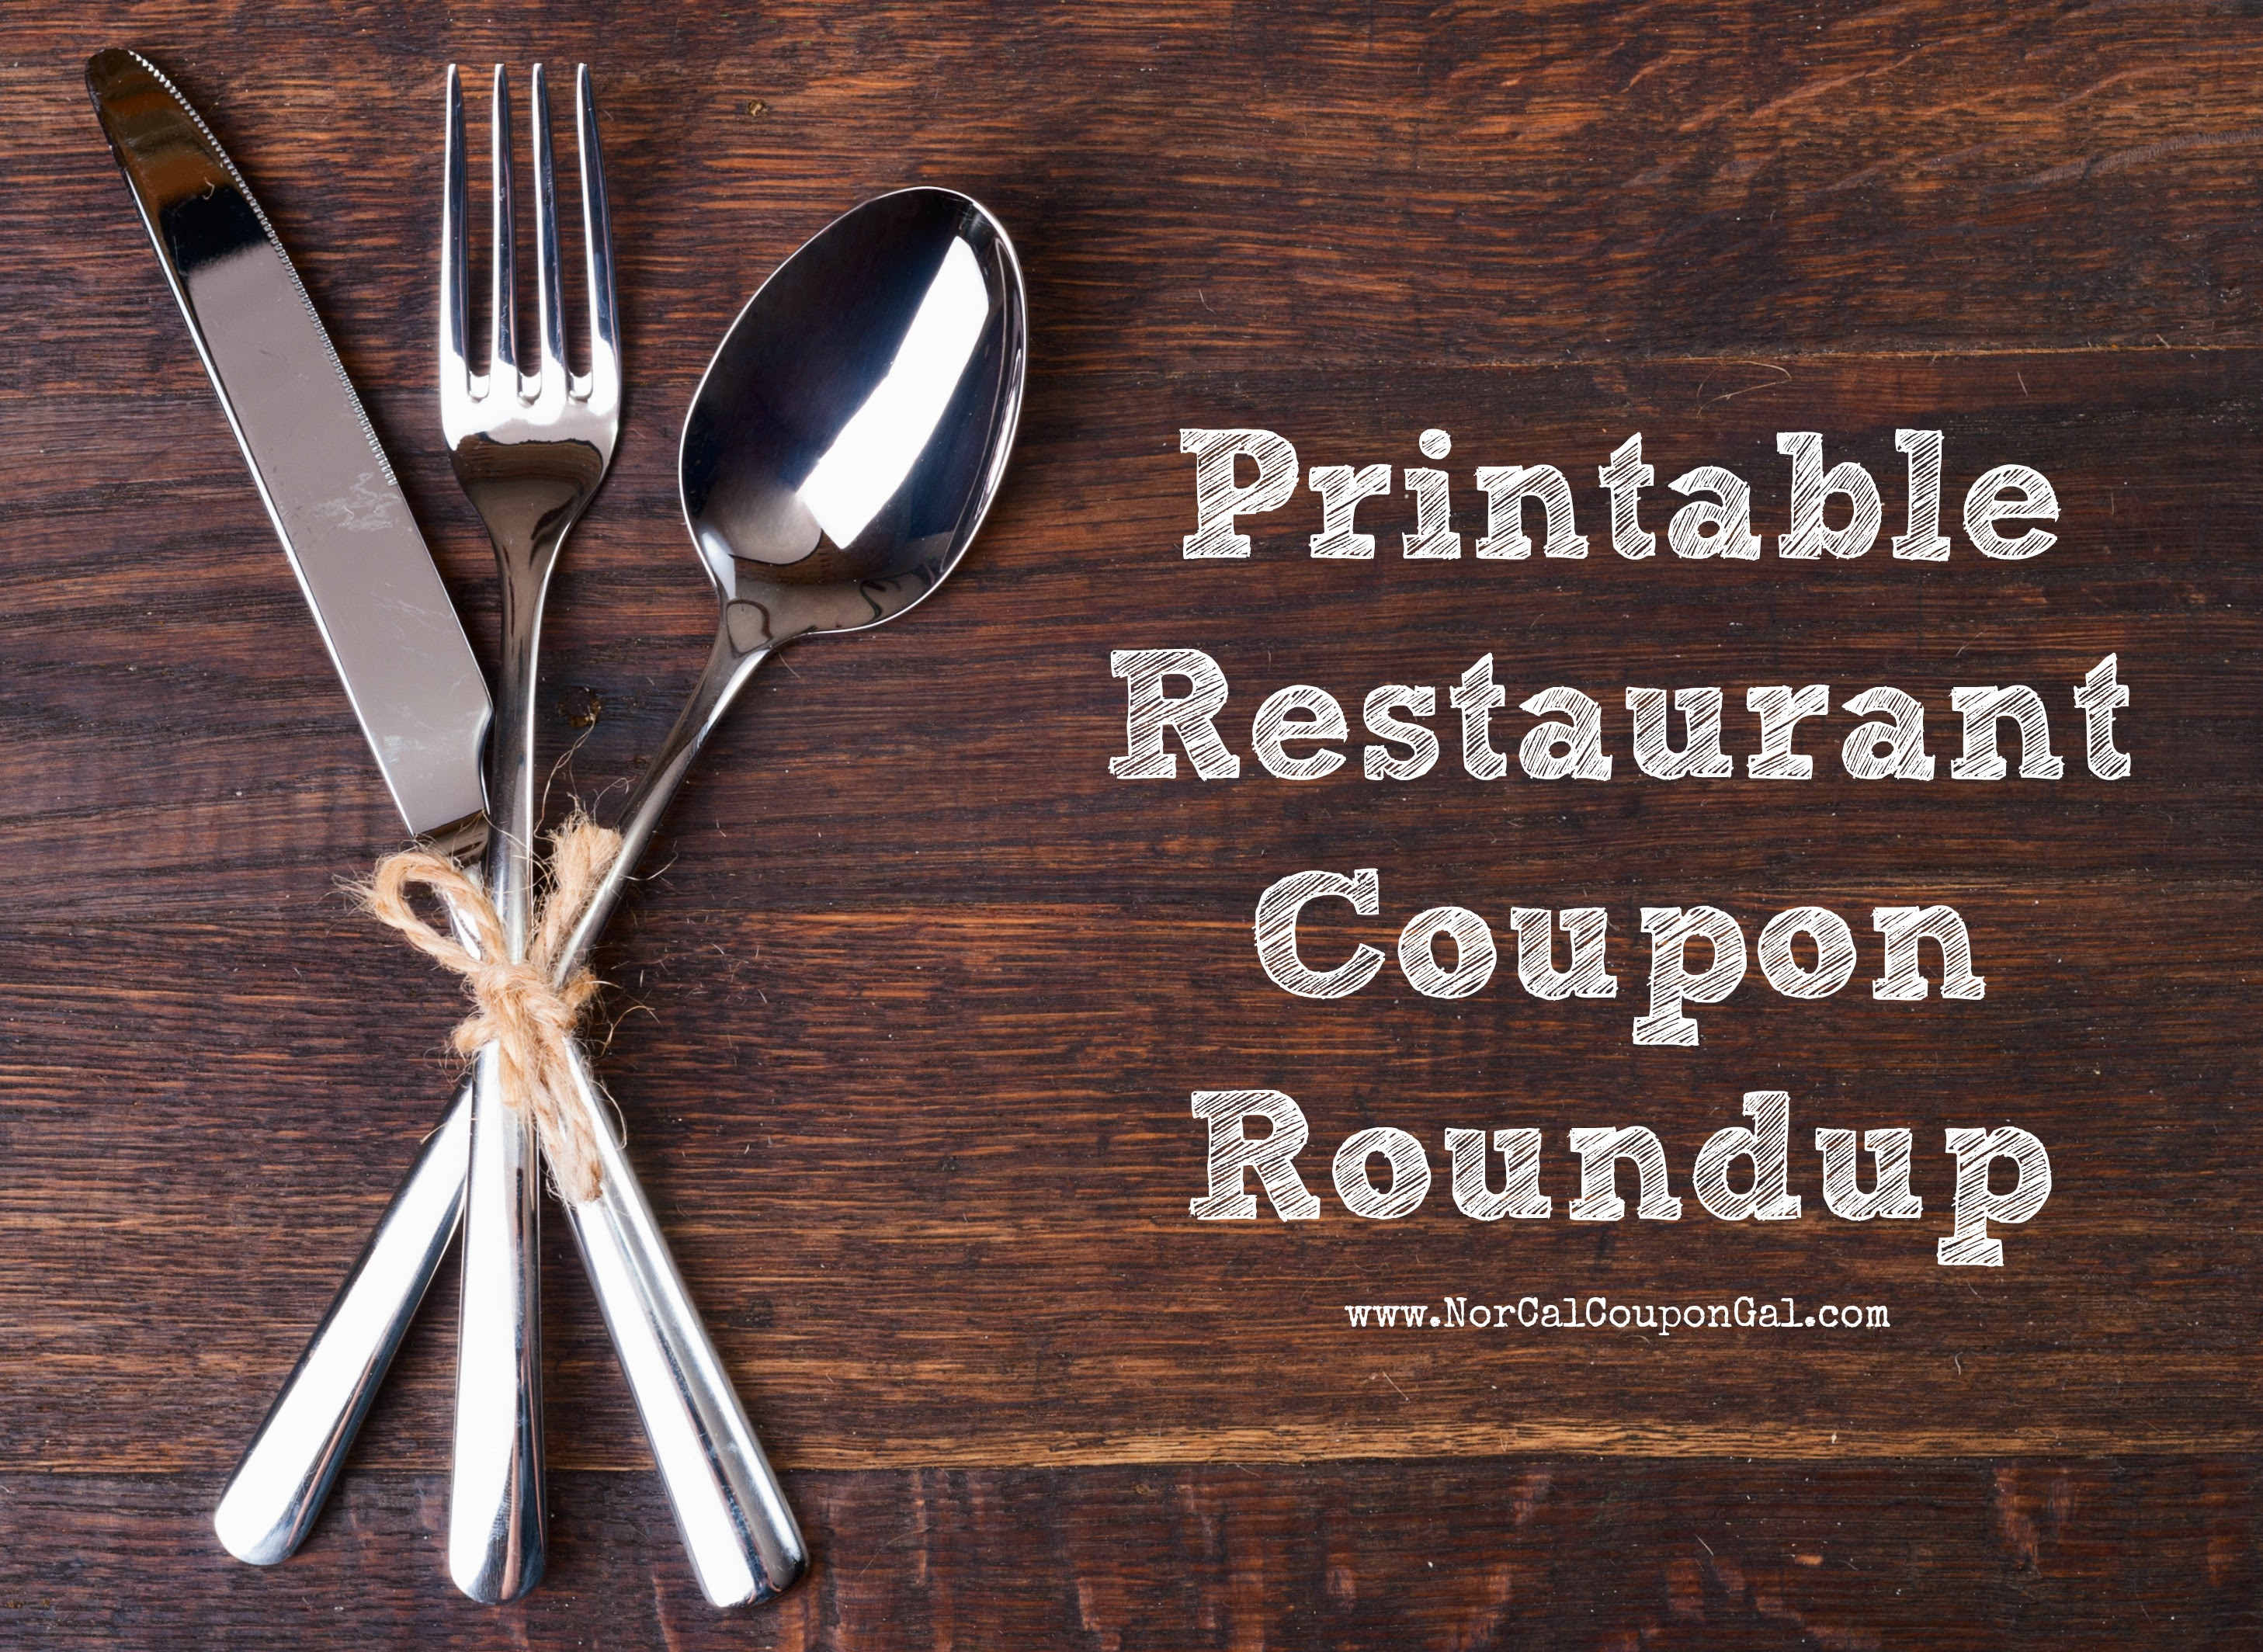 Printable Restaurant Coupons